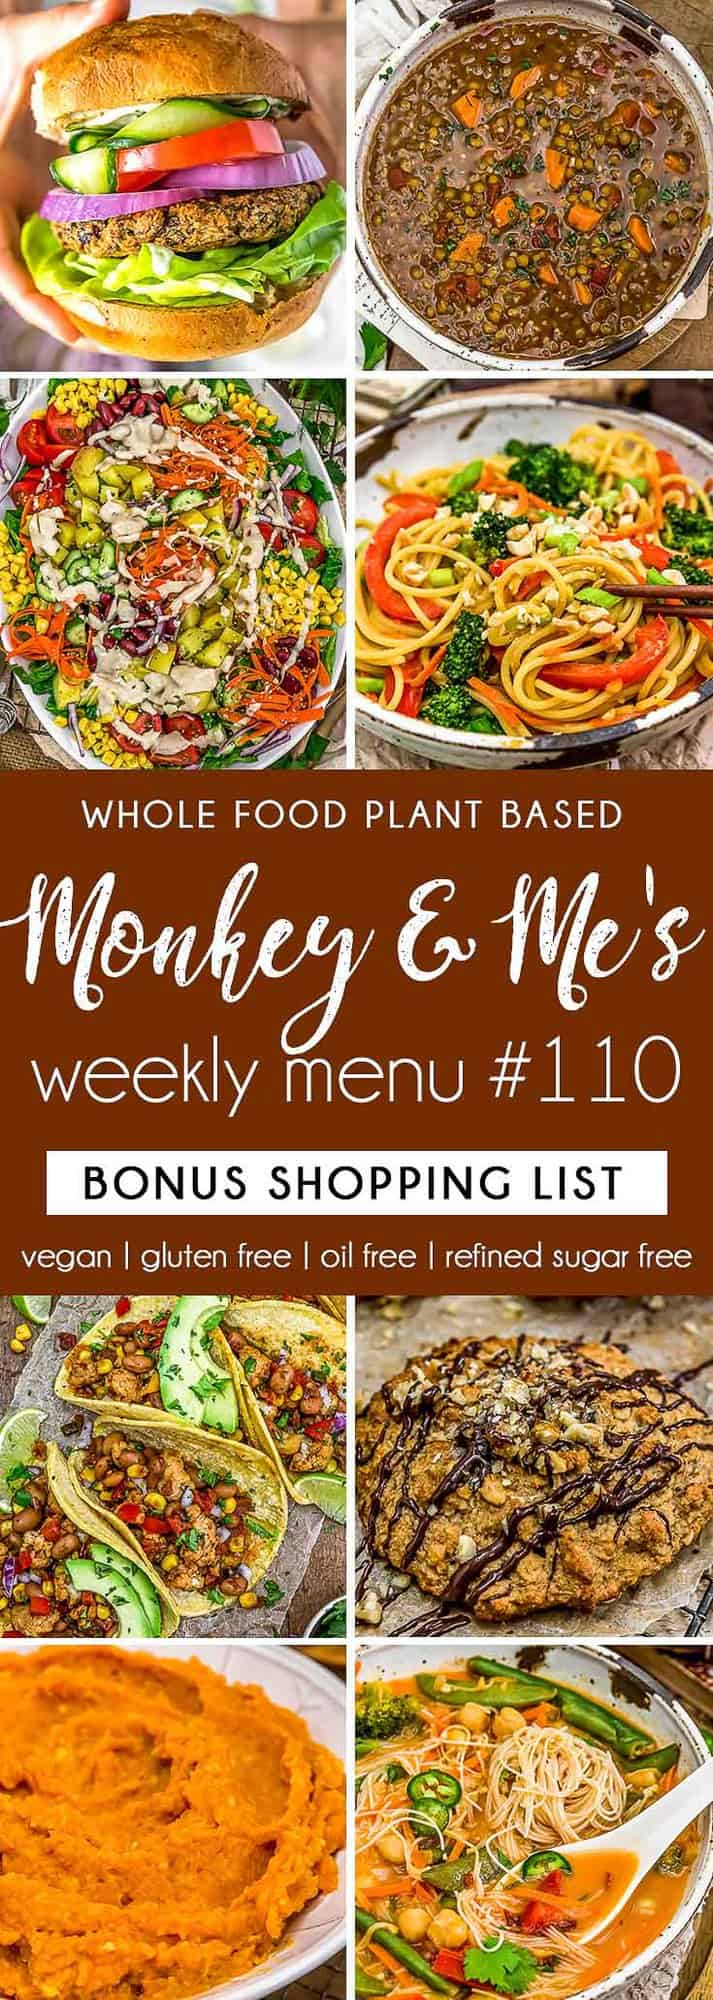 Monkey and Me's Menu 110 featuring 8 recipes